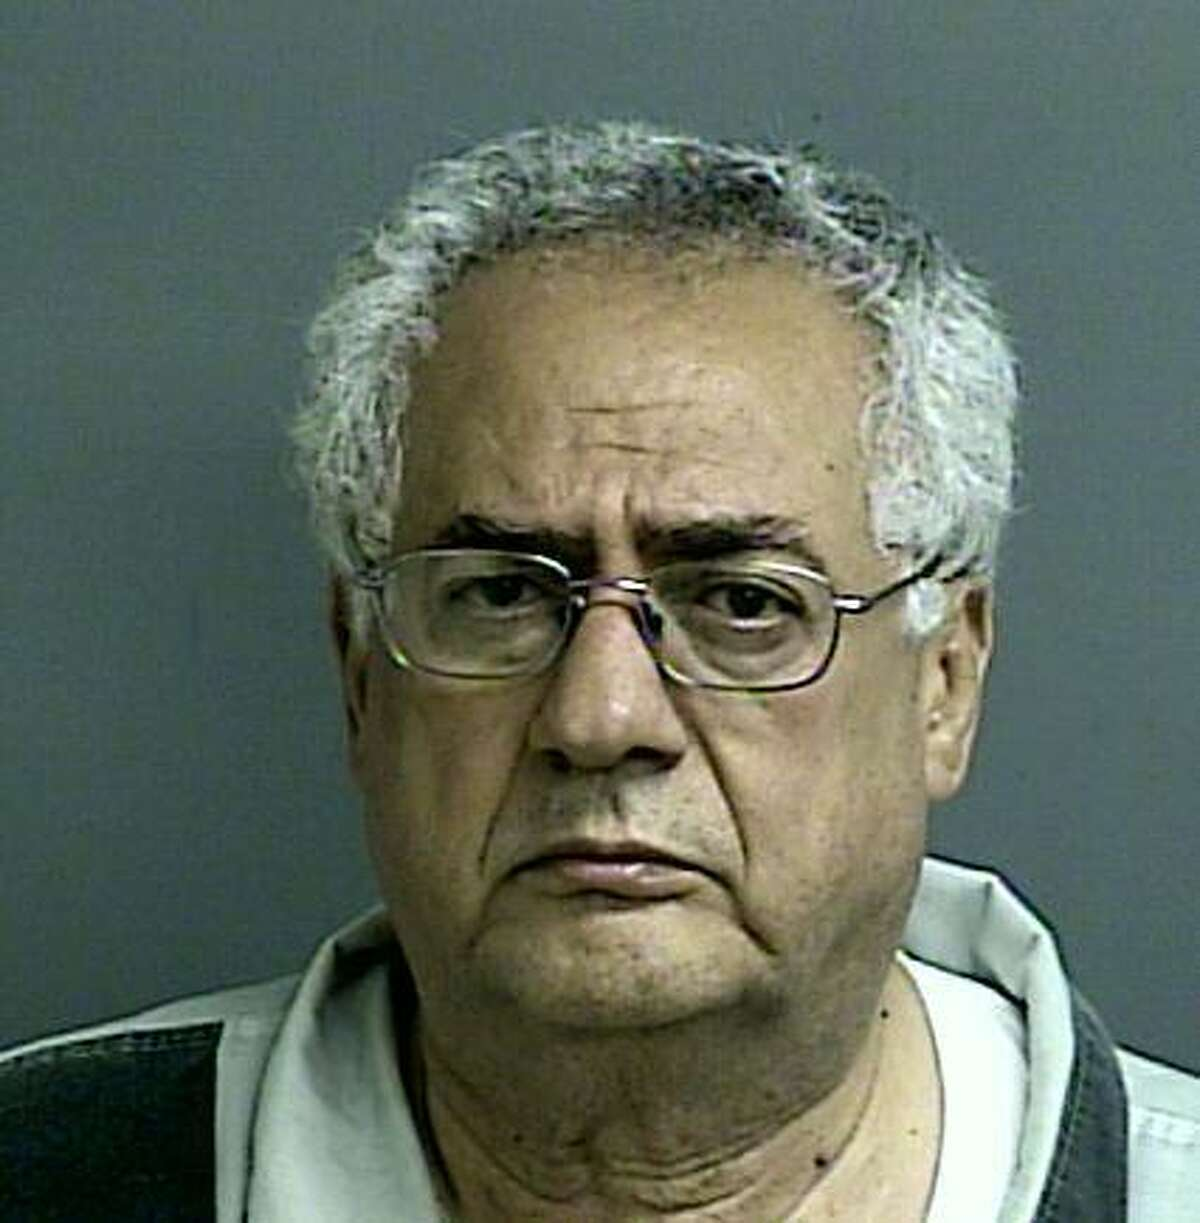 Dr. Rezik Saqer was arrested Tuesday night, Sept. 22, 2015, in connection with a car crash near Lake Conroe that left four members of a family dead over the weekend.